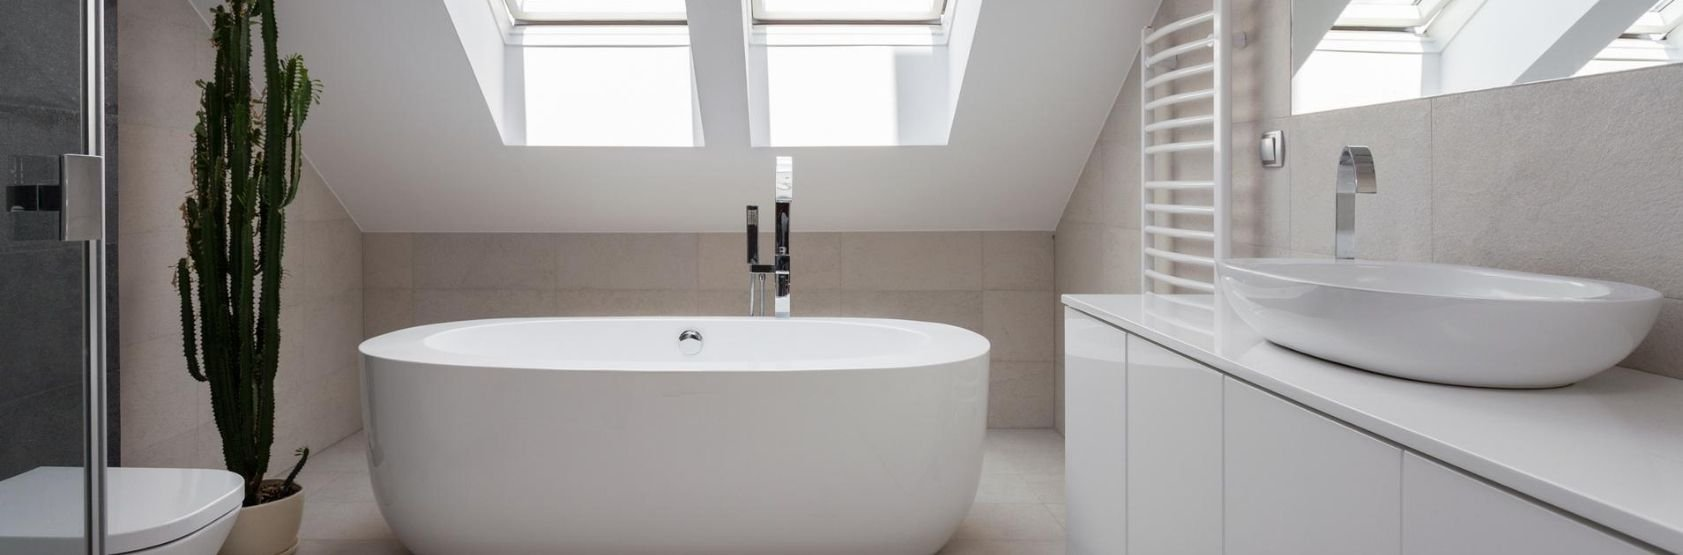 Bathroom-Fitting-Services-Dorset-Hampshire_2